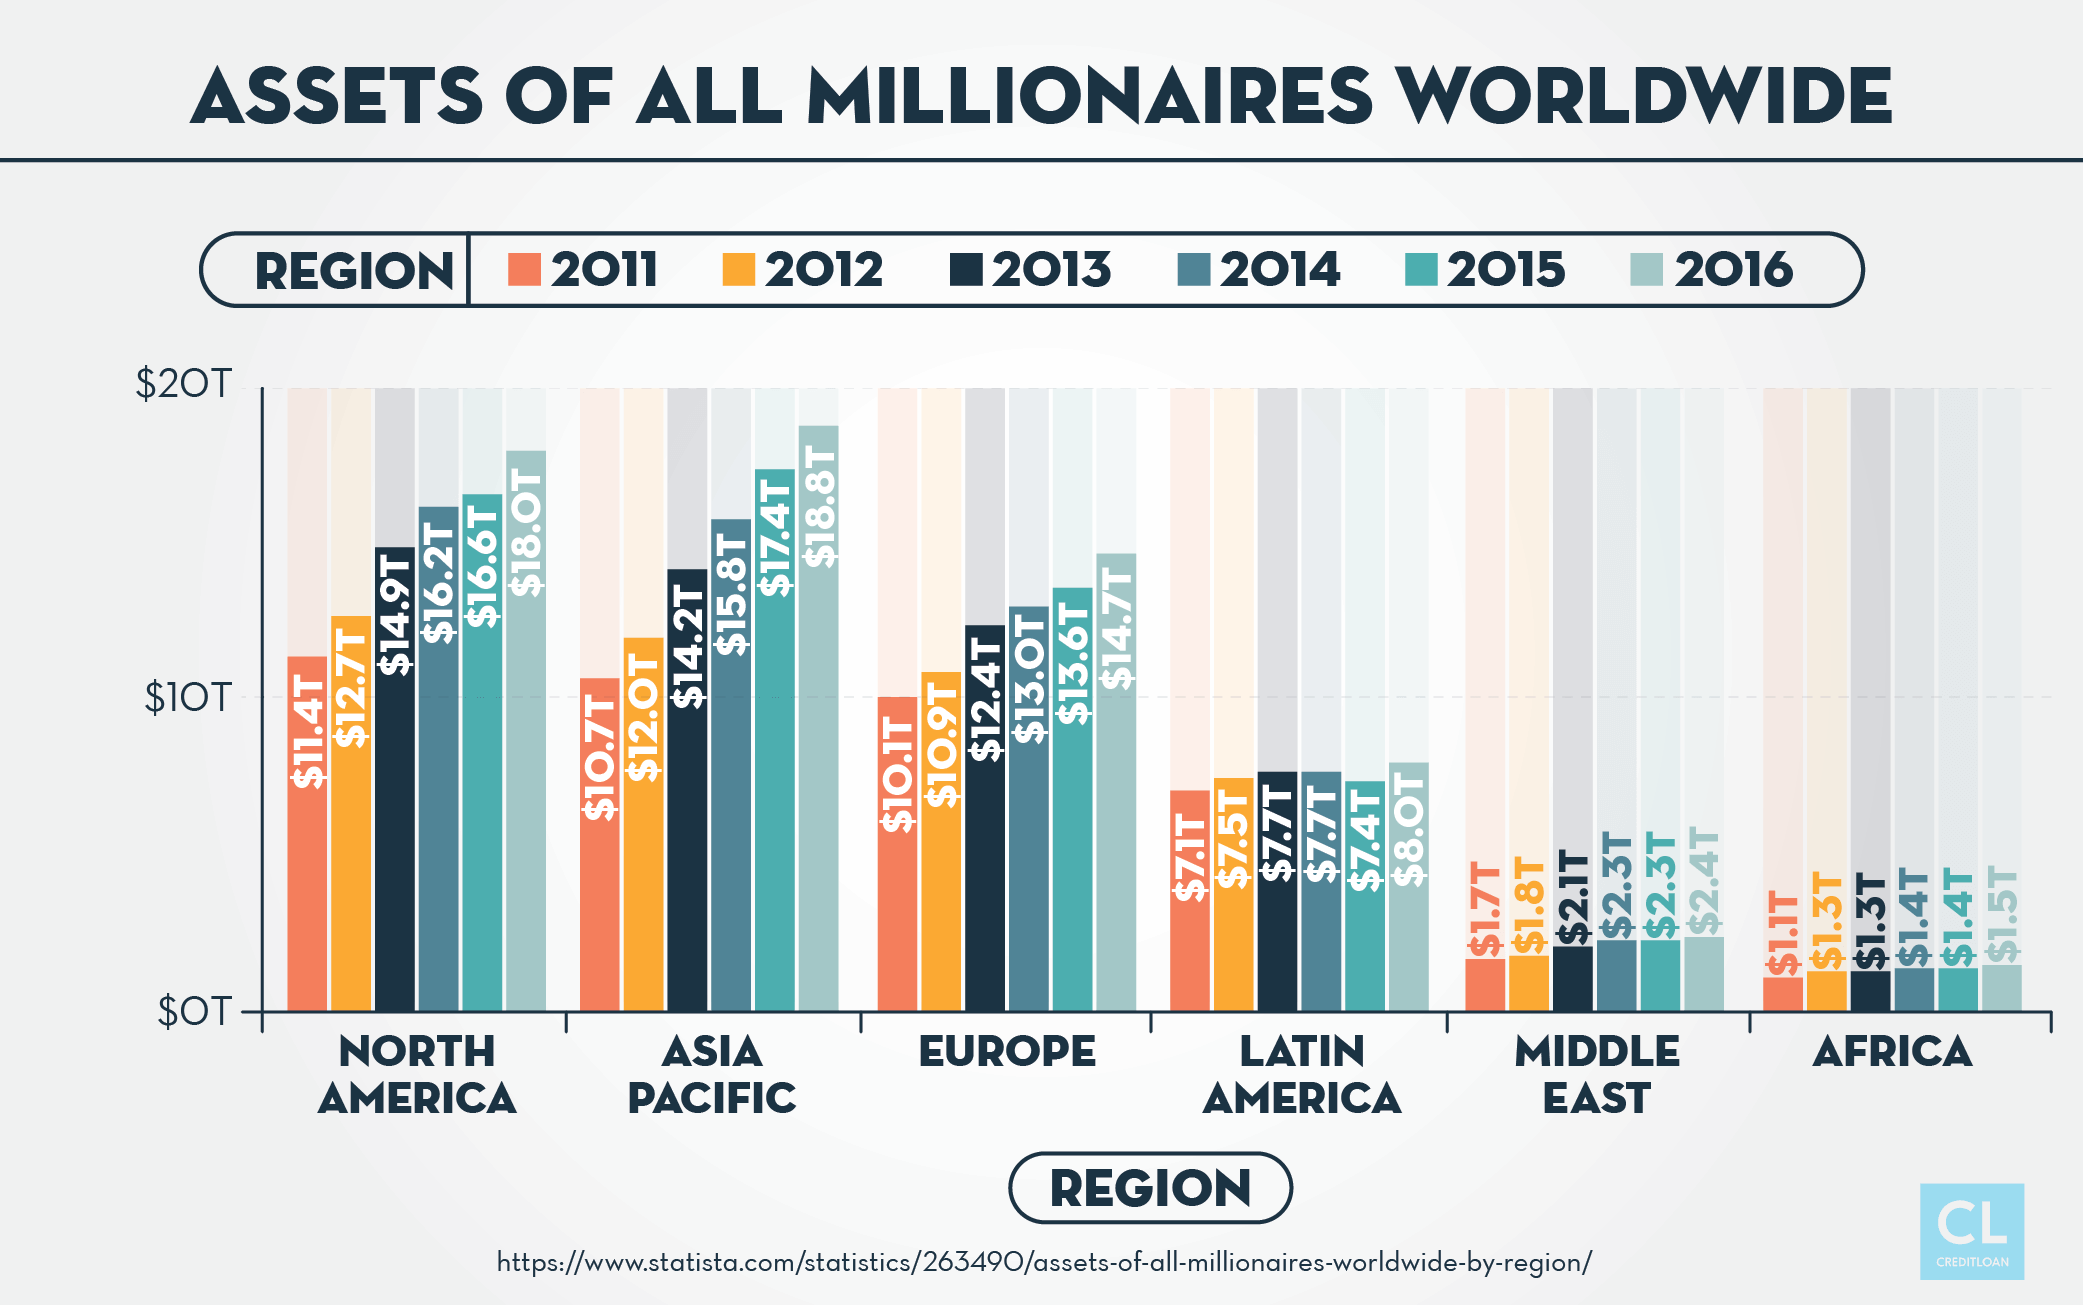 Assets of All Millionaires Worldwide from 2011-2016